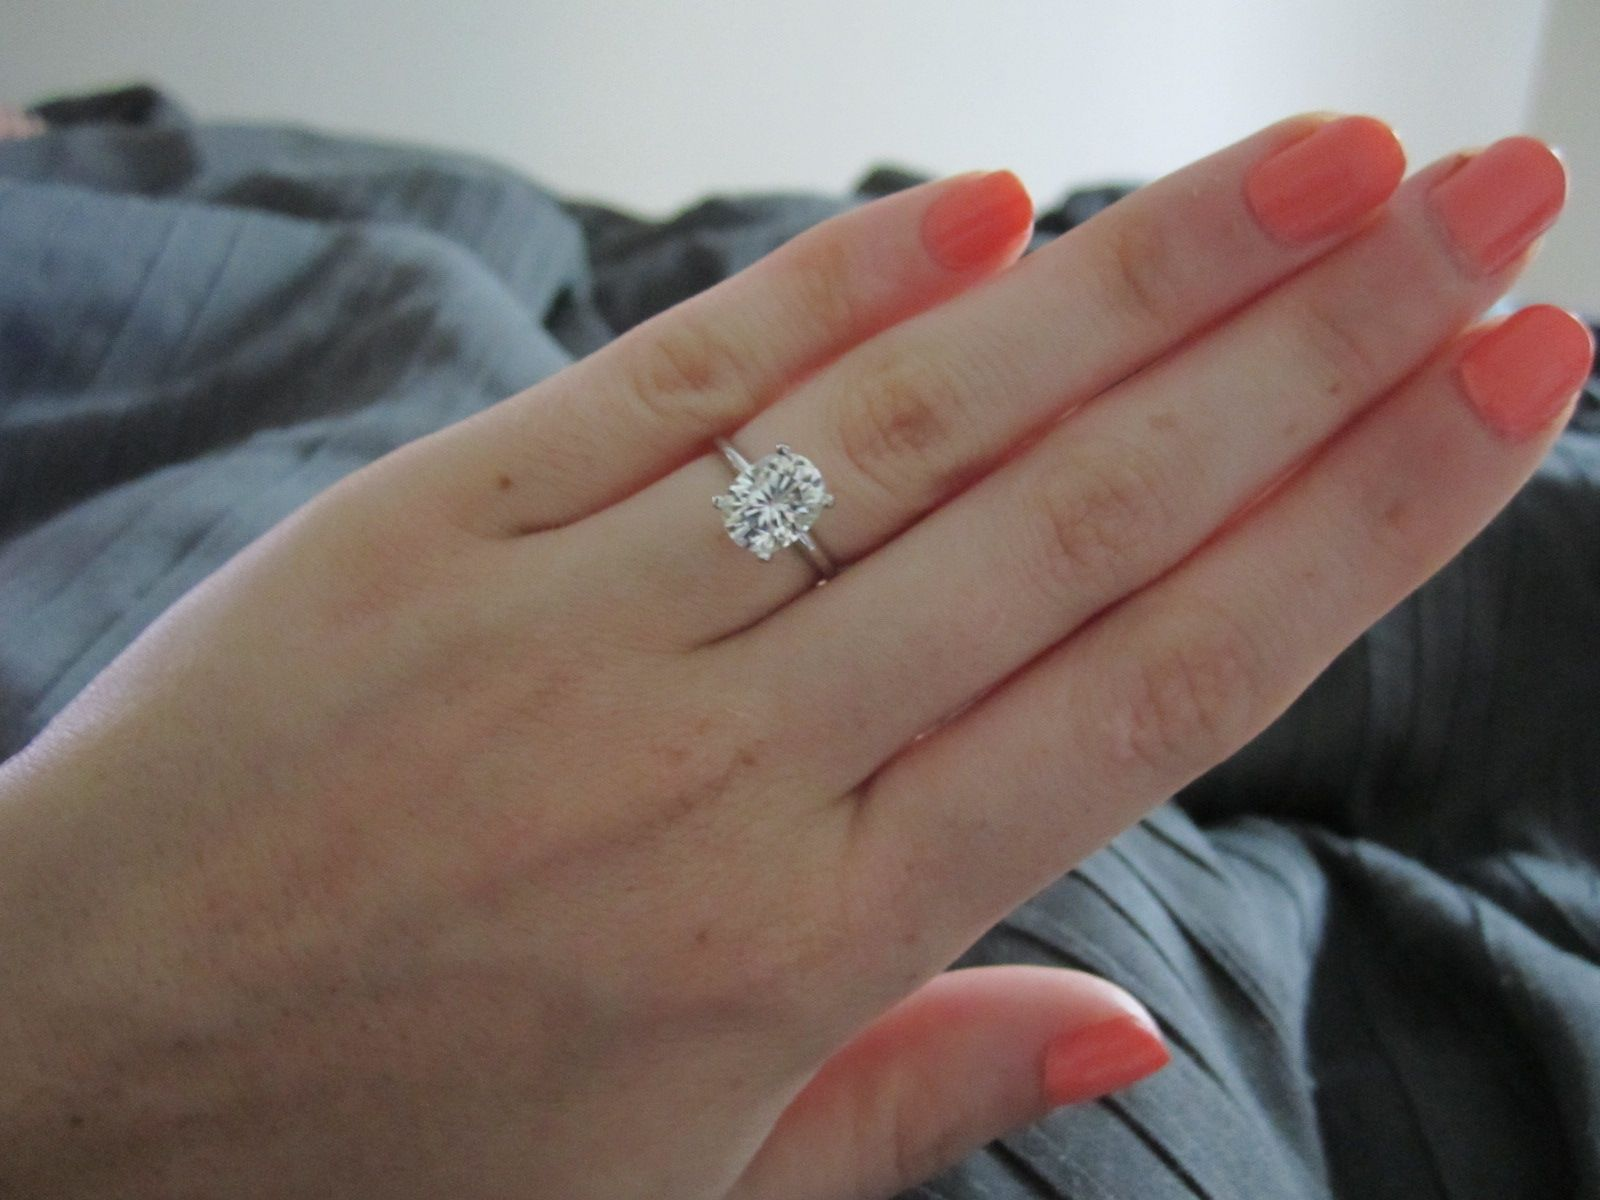 2 Carat Oval Forever Brillliant  15mm Band Beautiful! My Dream Solitaire  Stone Oval Solitaire Engagement Ringdiamond